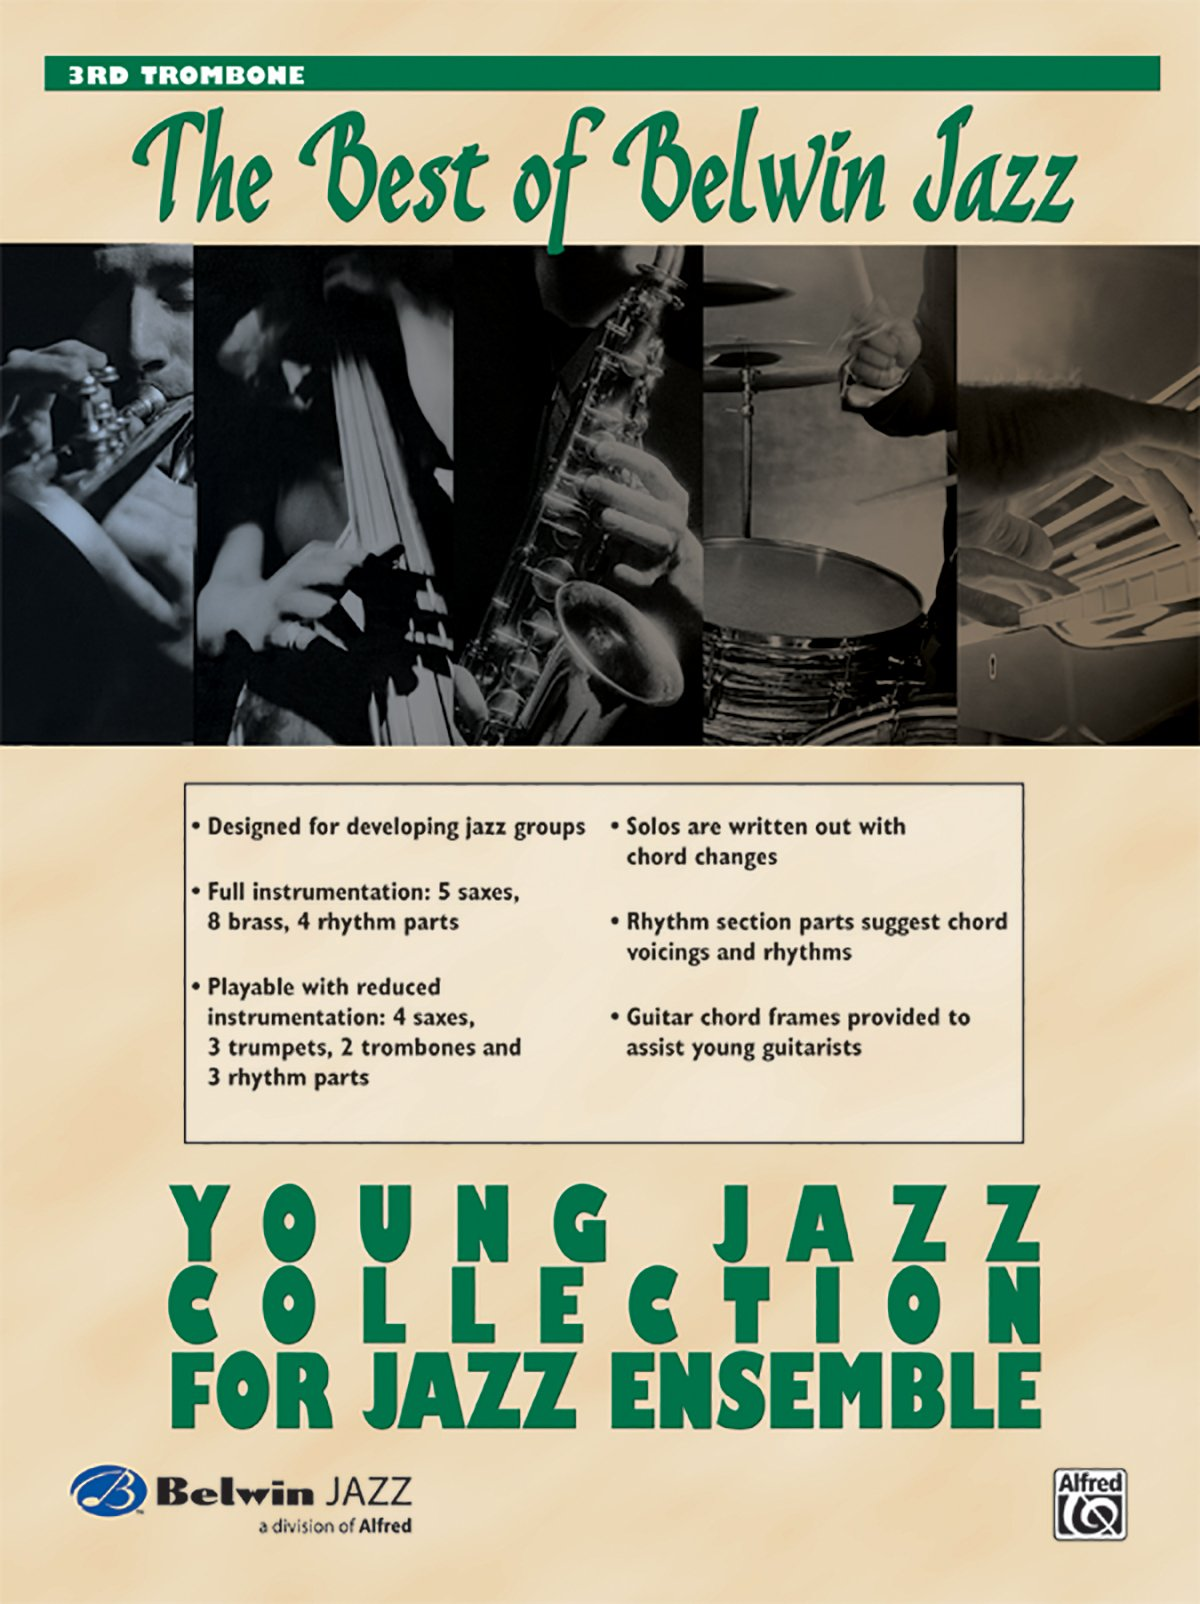 Download Young Jazz Collection for Jazz Ensemble: 3rd Trombone pdf